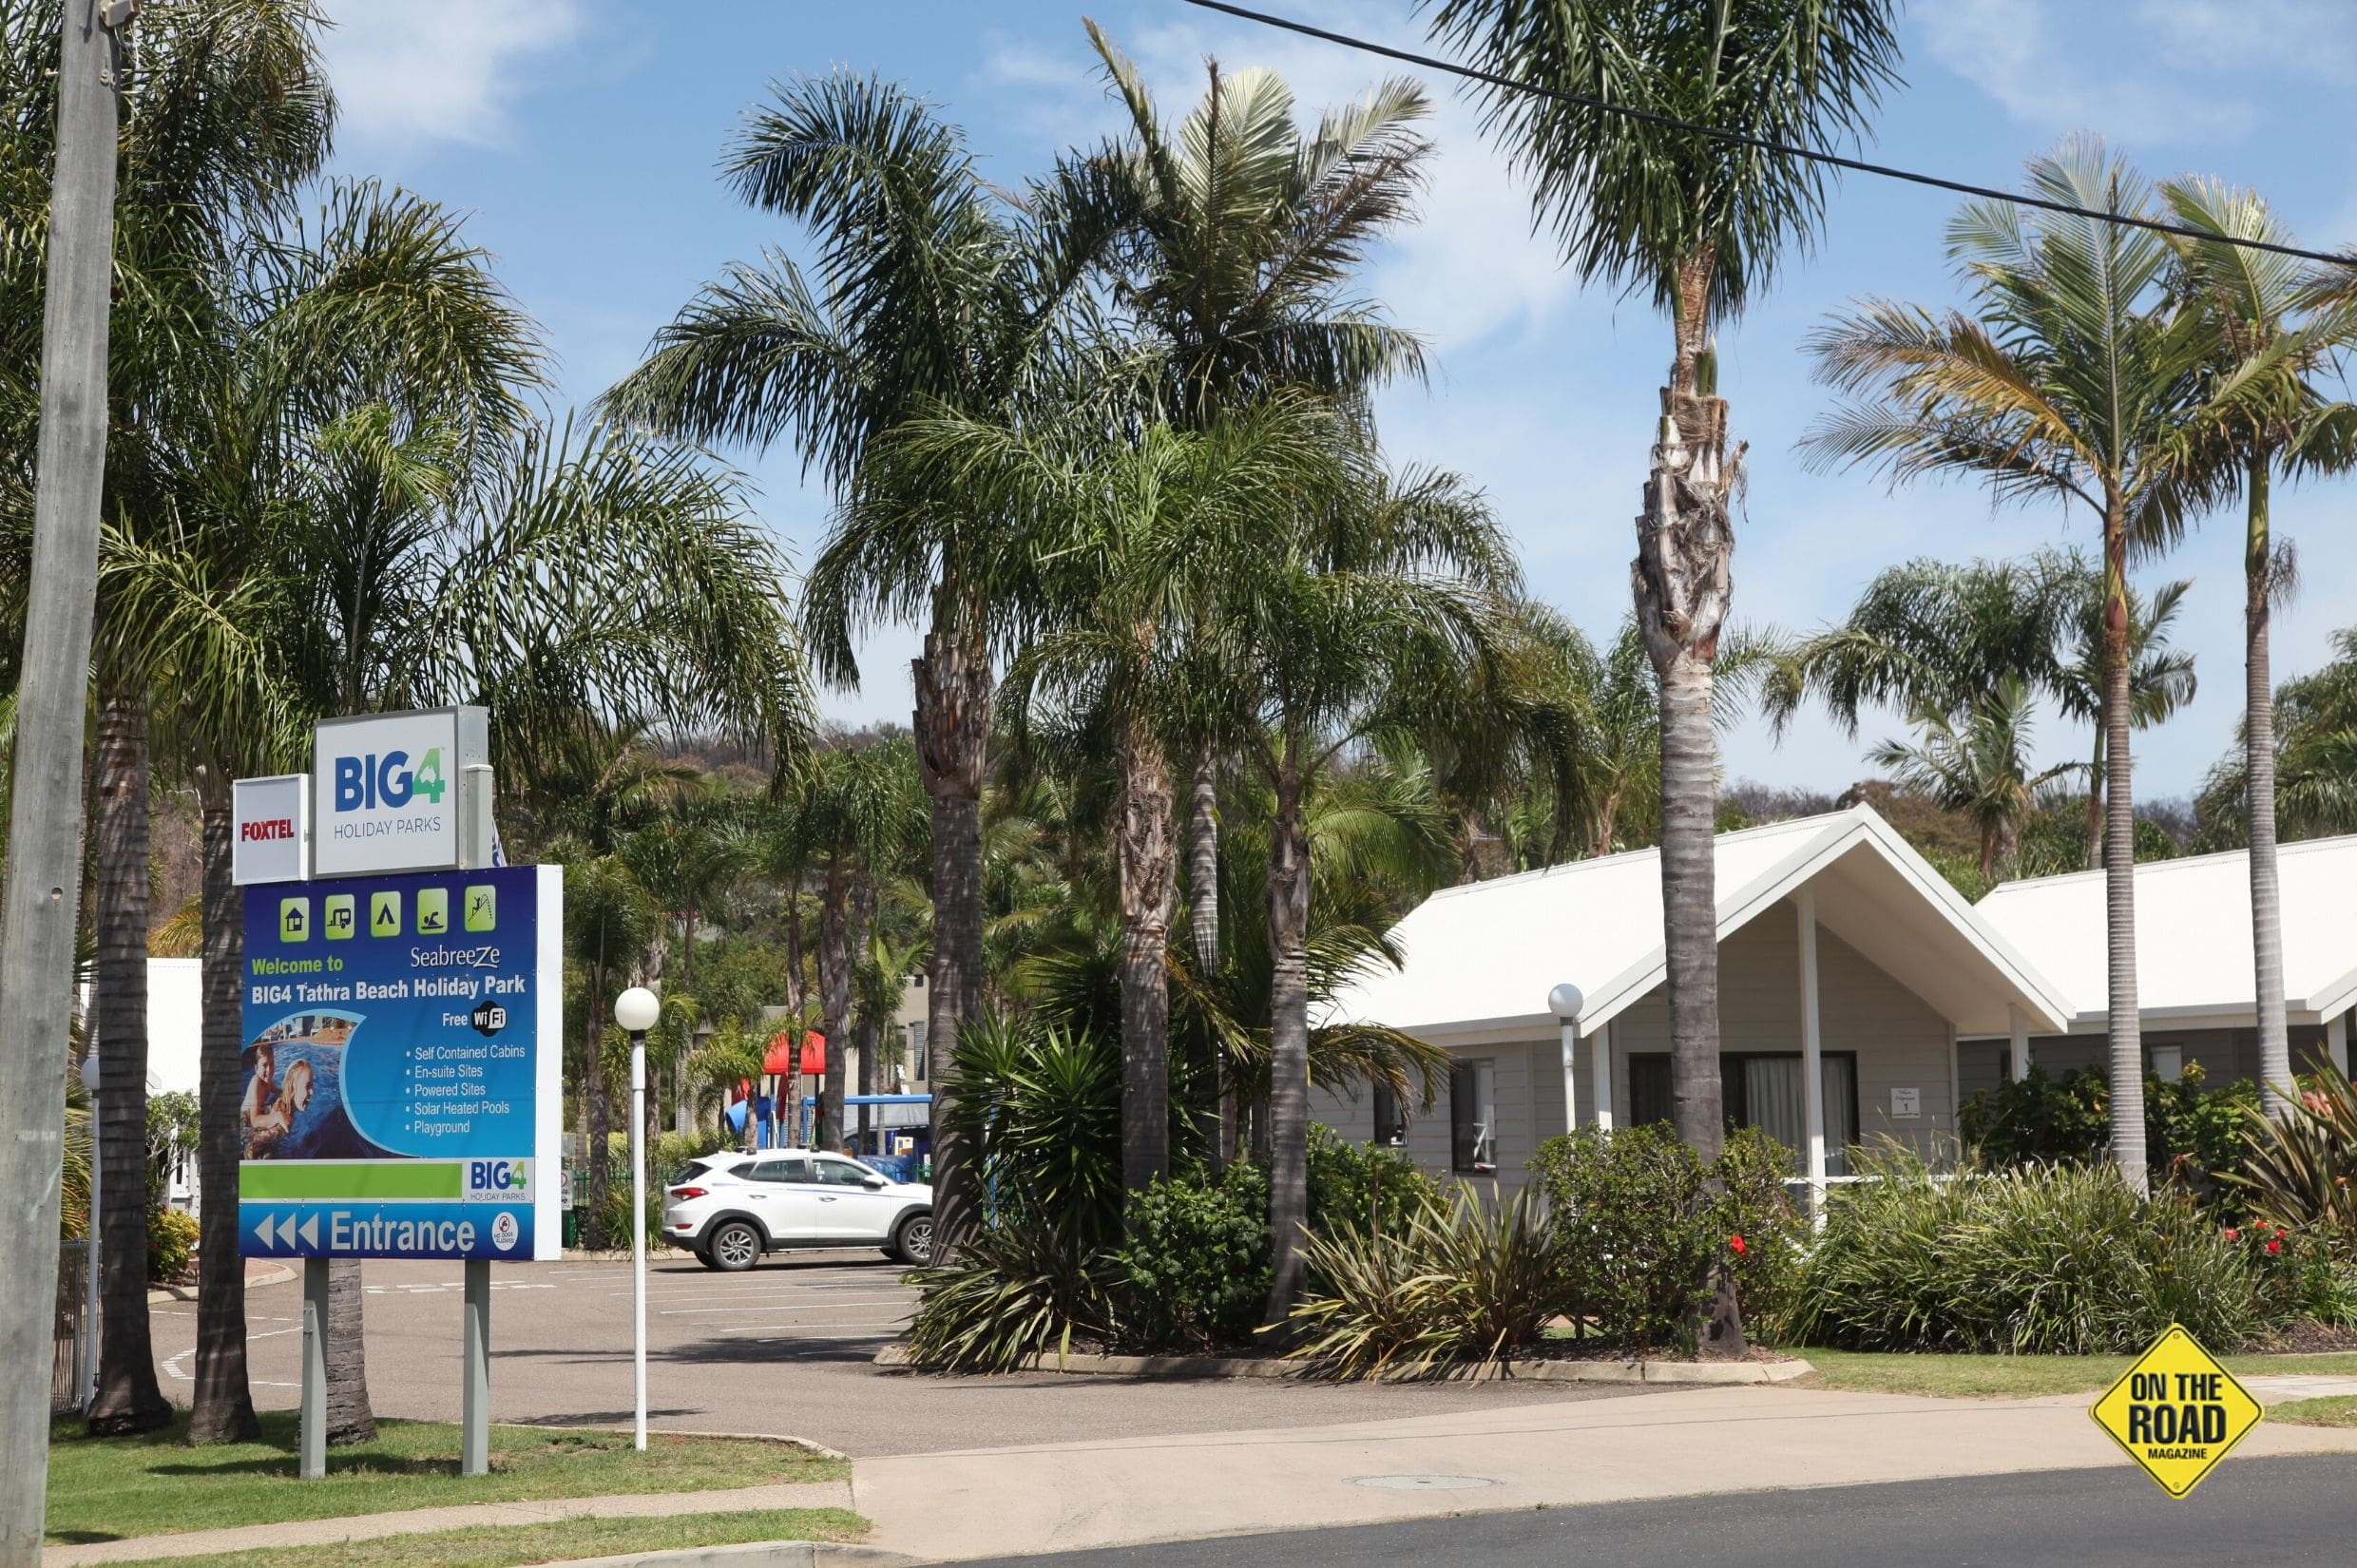 Plenty of top Caravan Parks in town with great locations